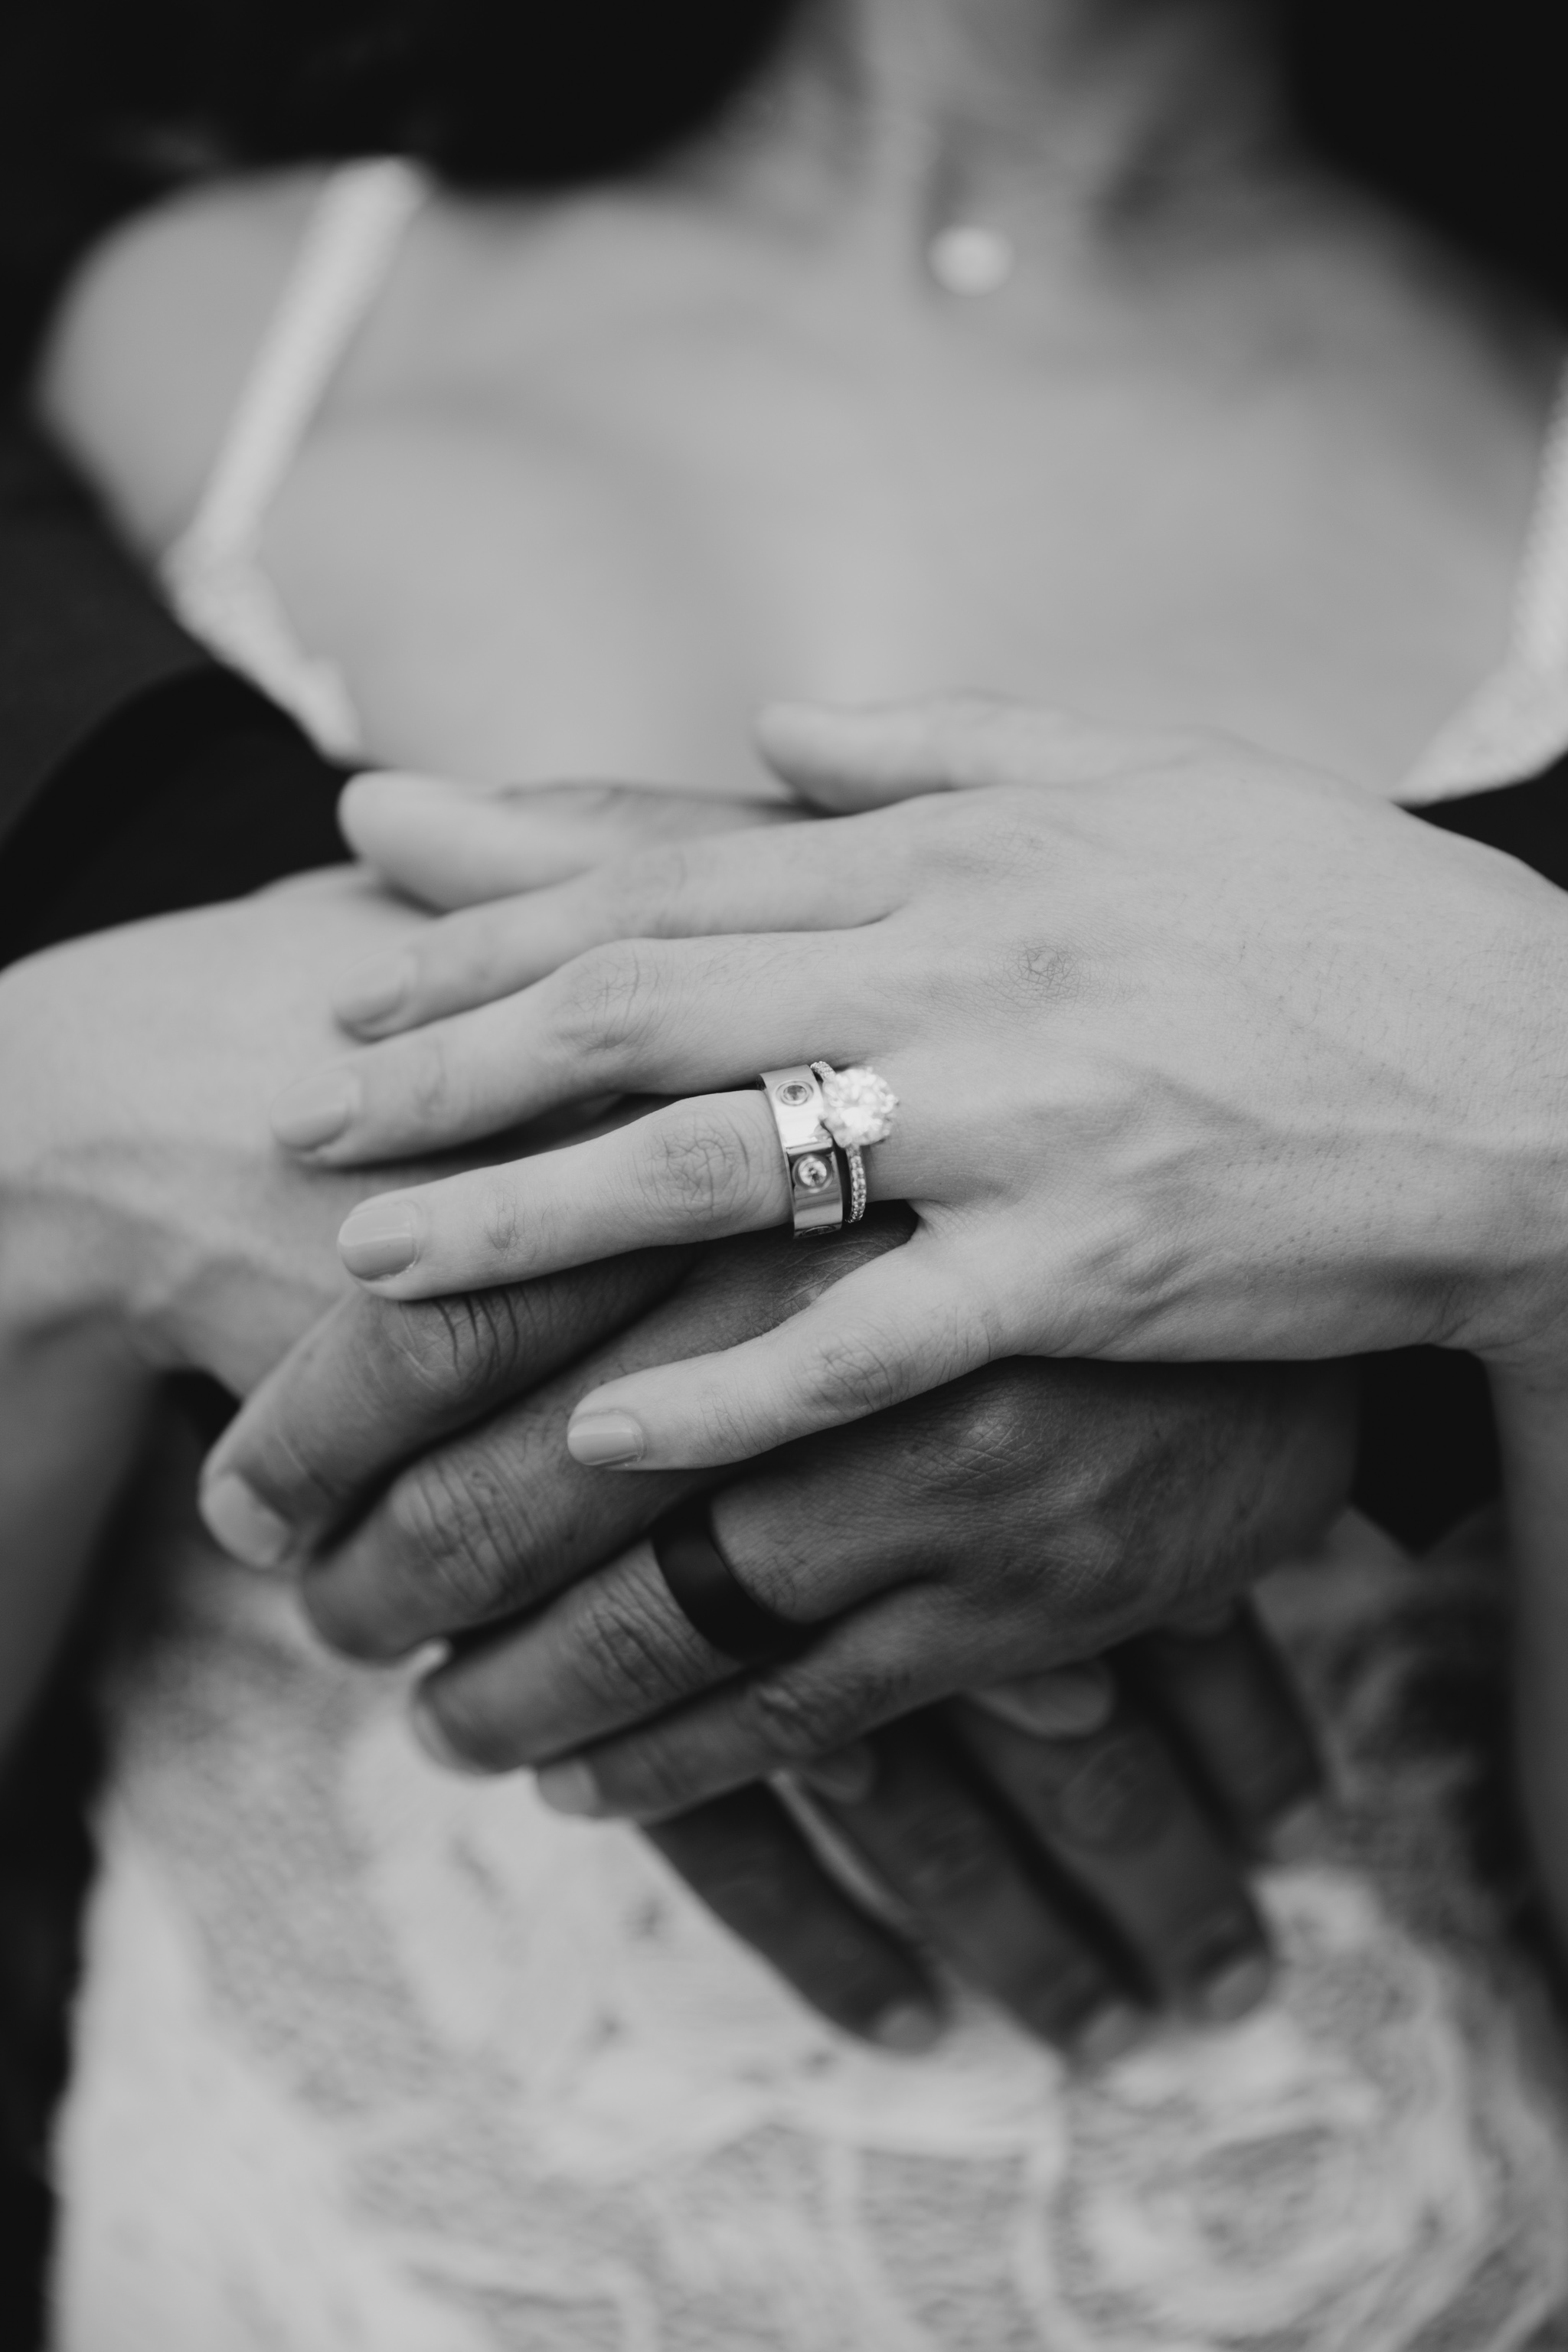 Cartier Black and White Wedding Ring Photo - Hale Koa Phineas Estate Wedding By Oahu Wedding Photographer Desiree Leilani